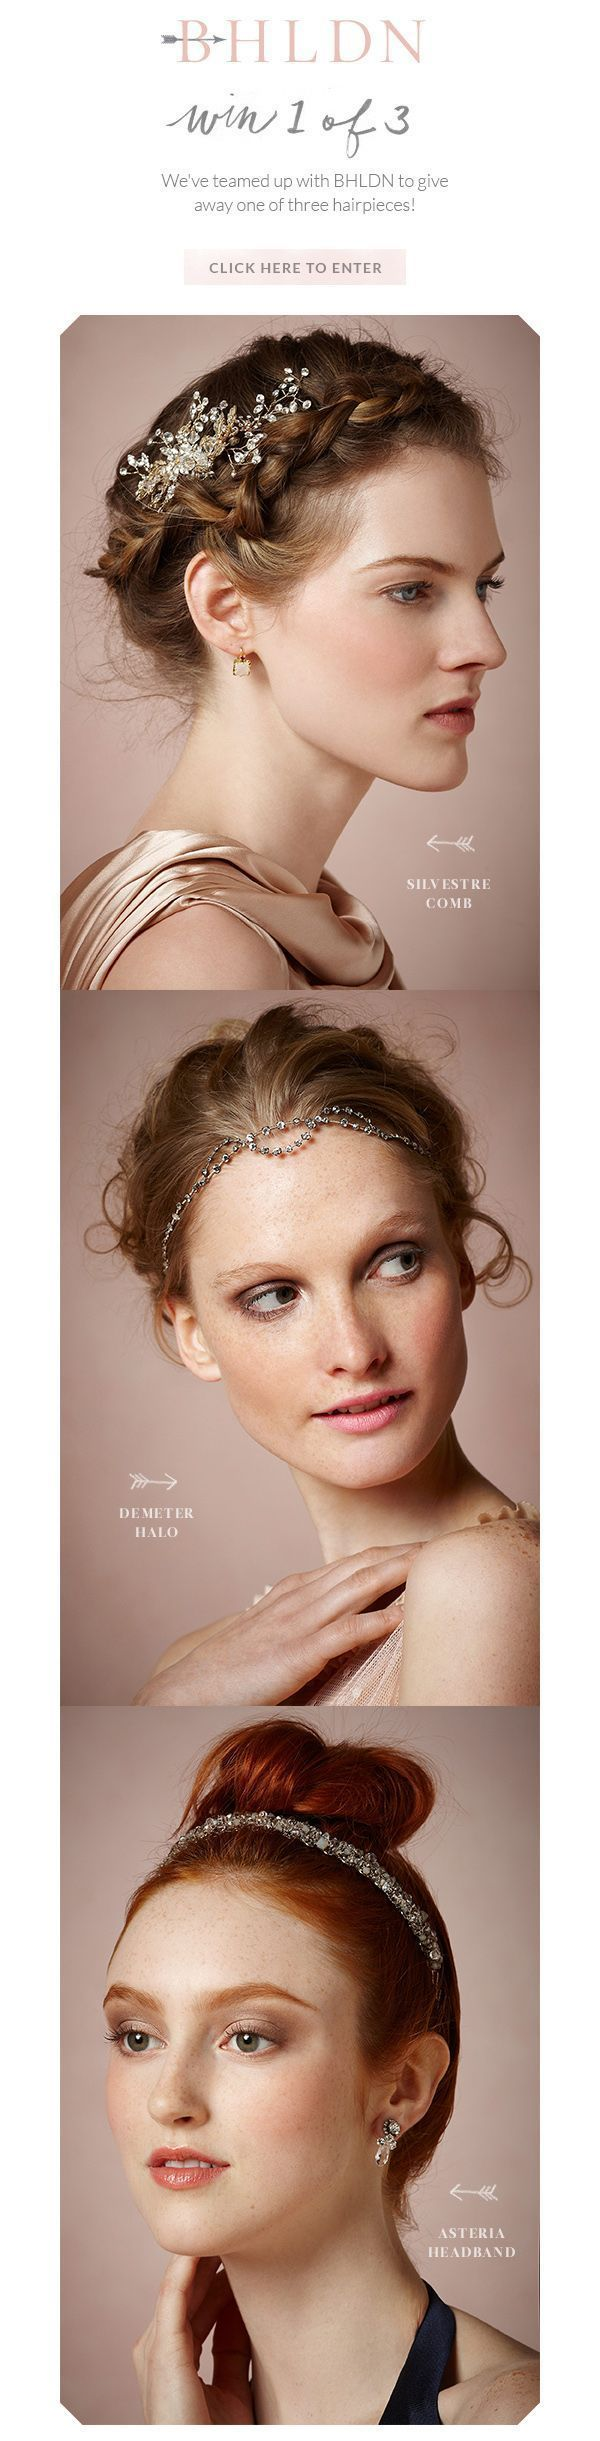 bhldn-hairpiece